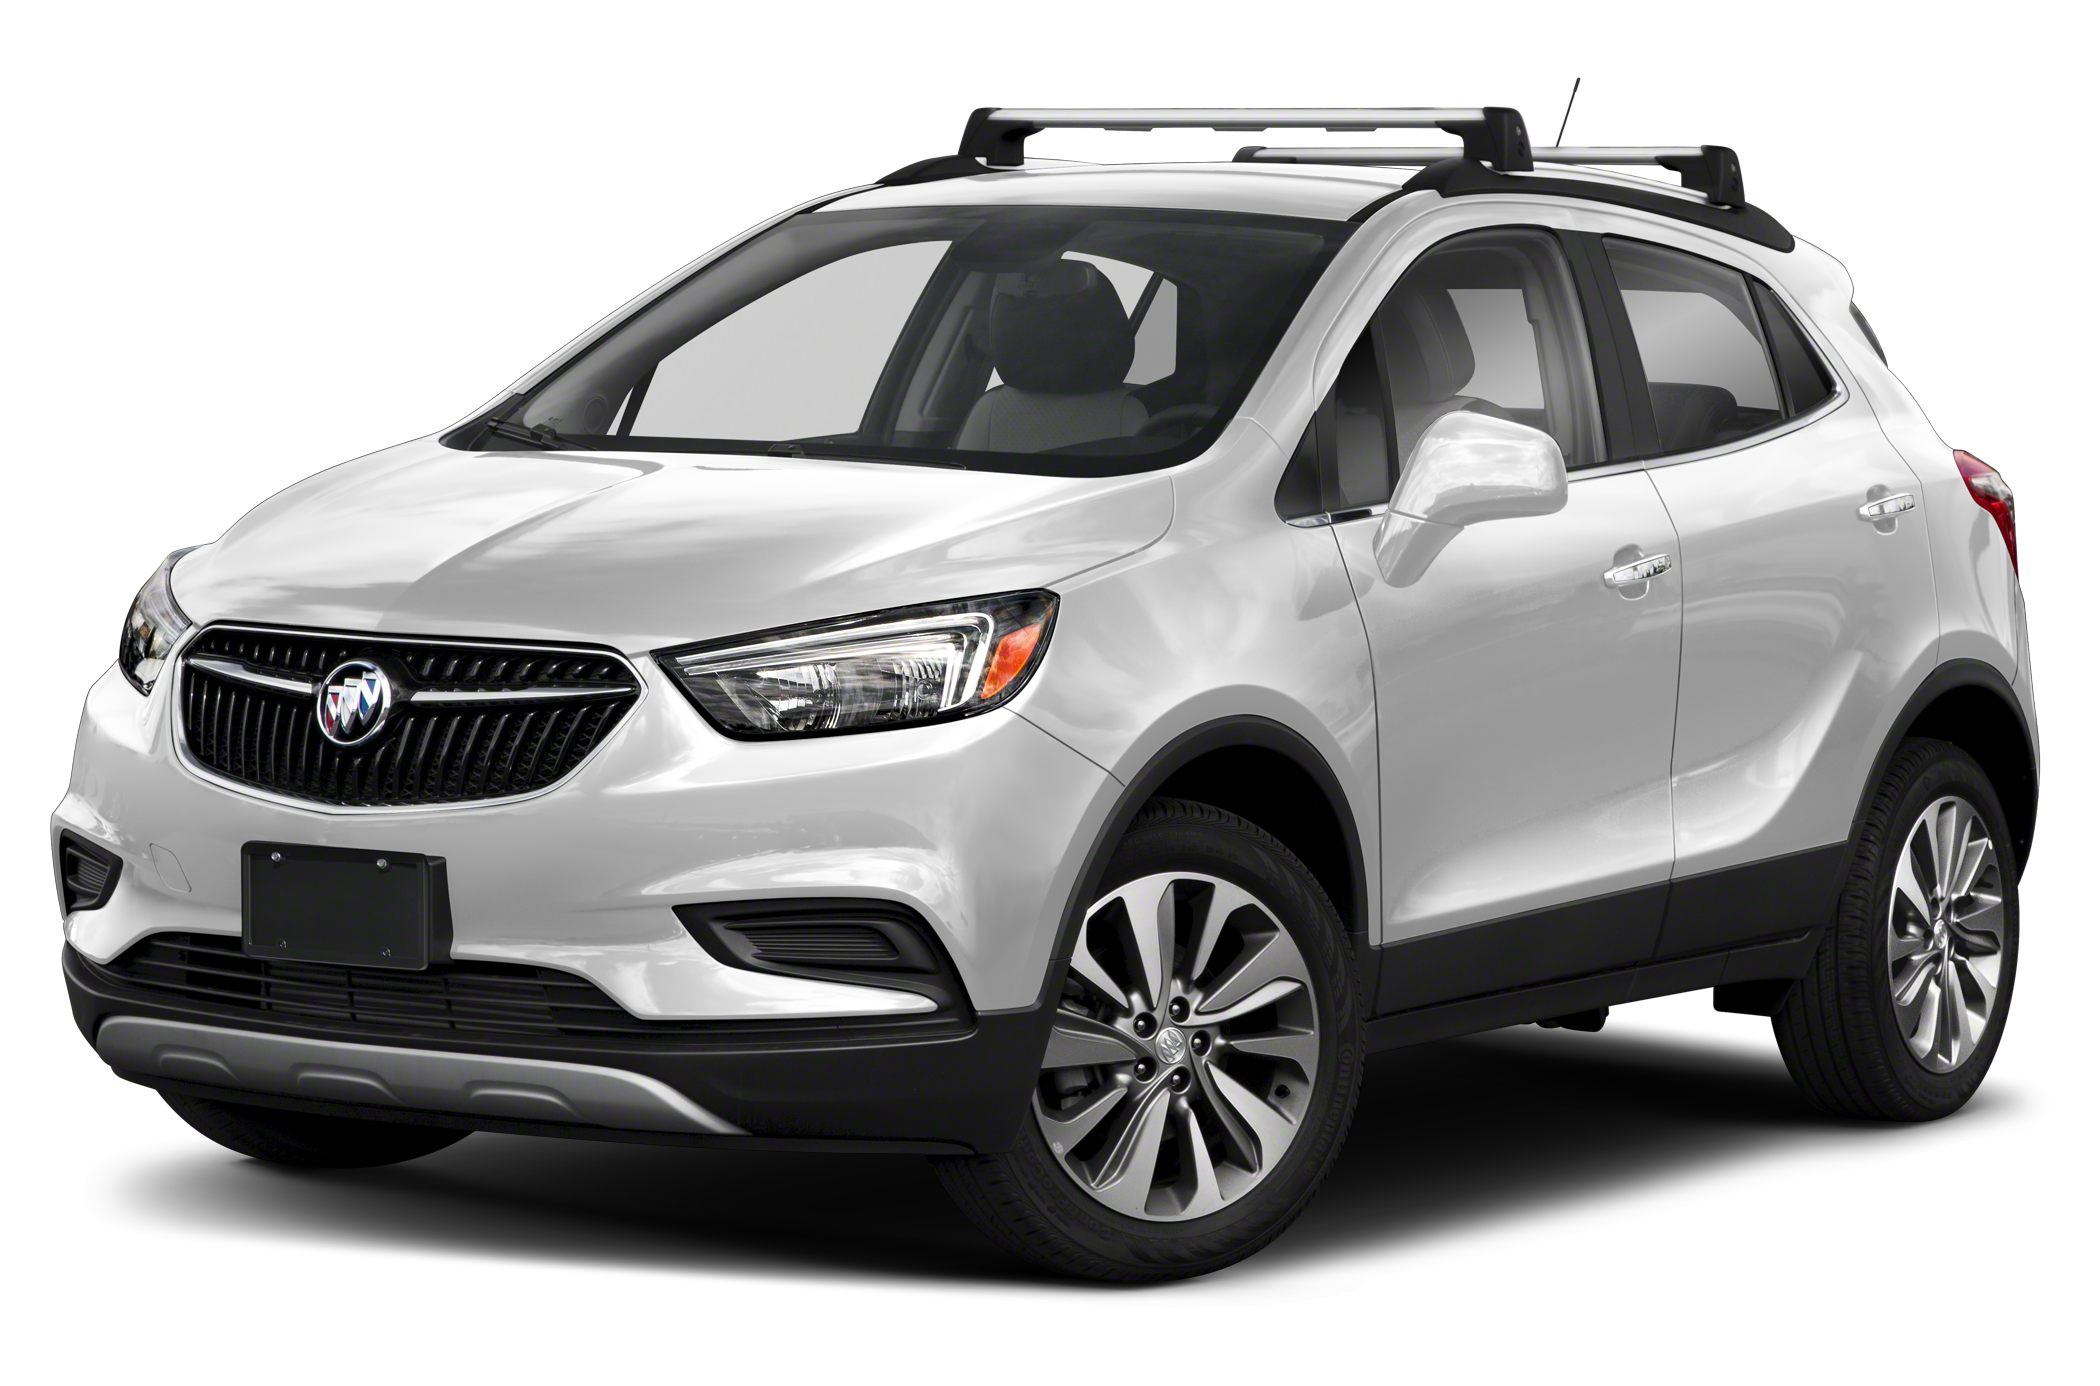 2021 Buick Encore Preferred All-Wheel Drive Specs And Prices New 2021 Buick Encore Cost, Build And Price, Engine